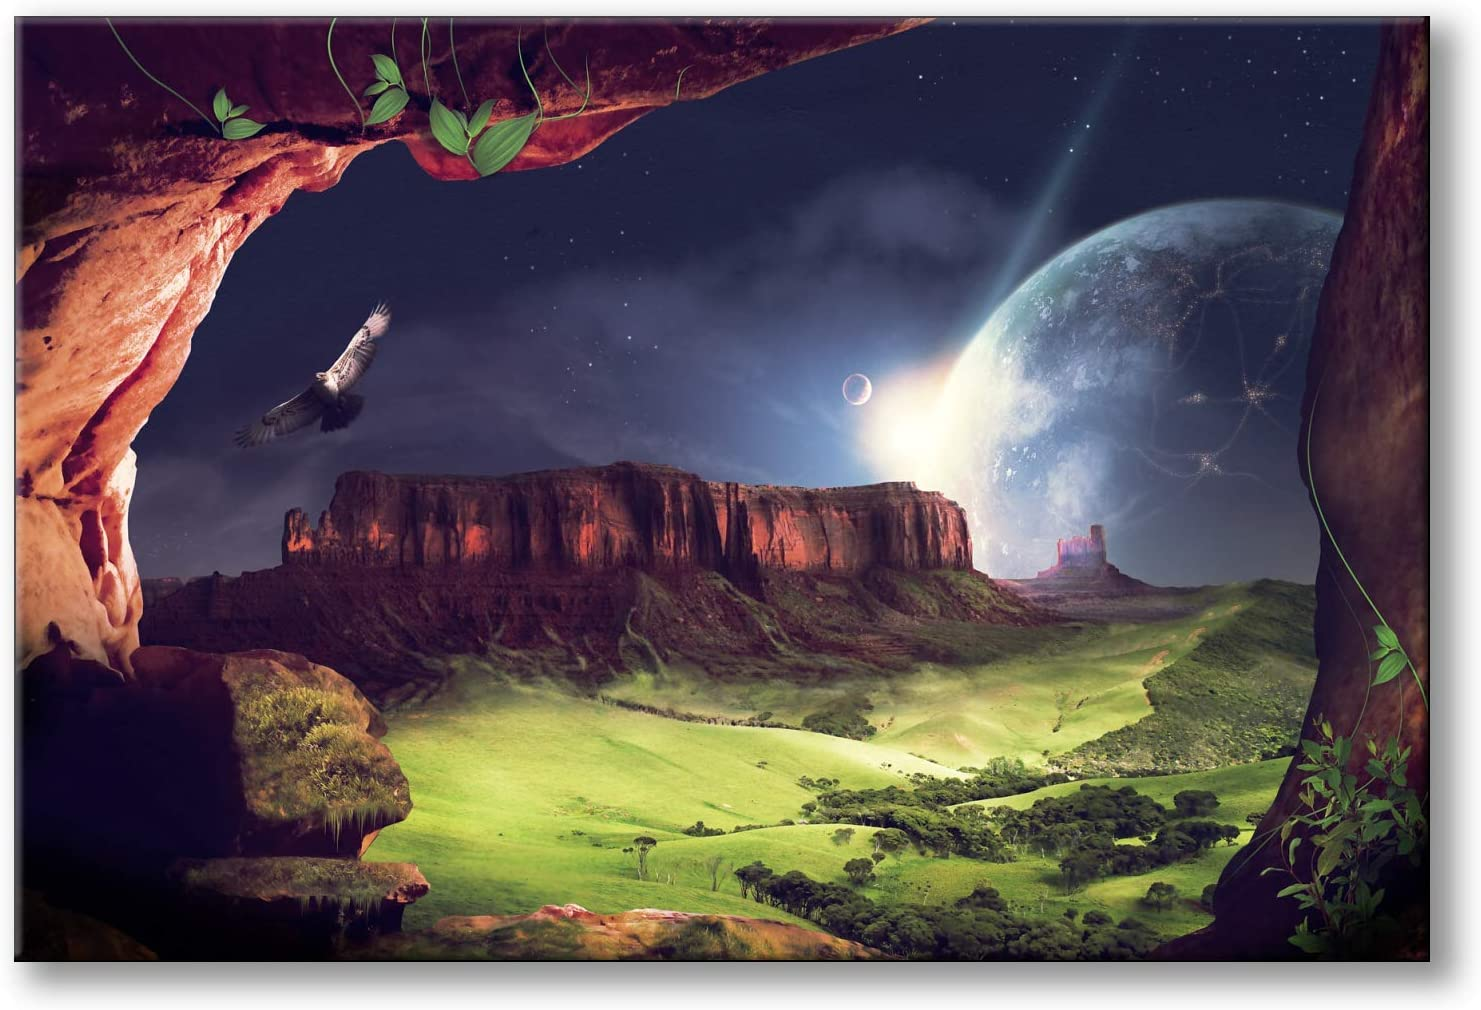 Spoonbills Modern Wall Art Fantasy Landscape Universe Painting Printed on Canvas for Home Decor Lifestyle Artwork (Landscape & Universe)